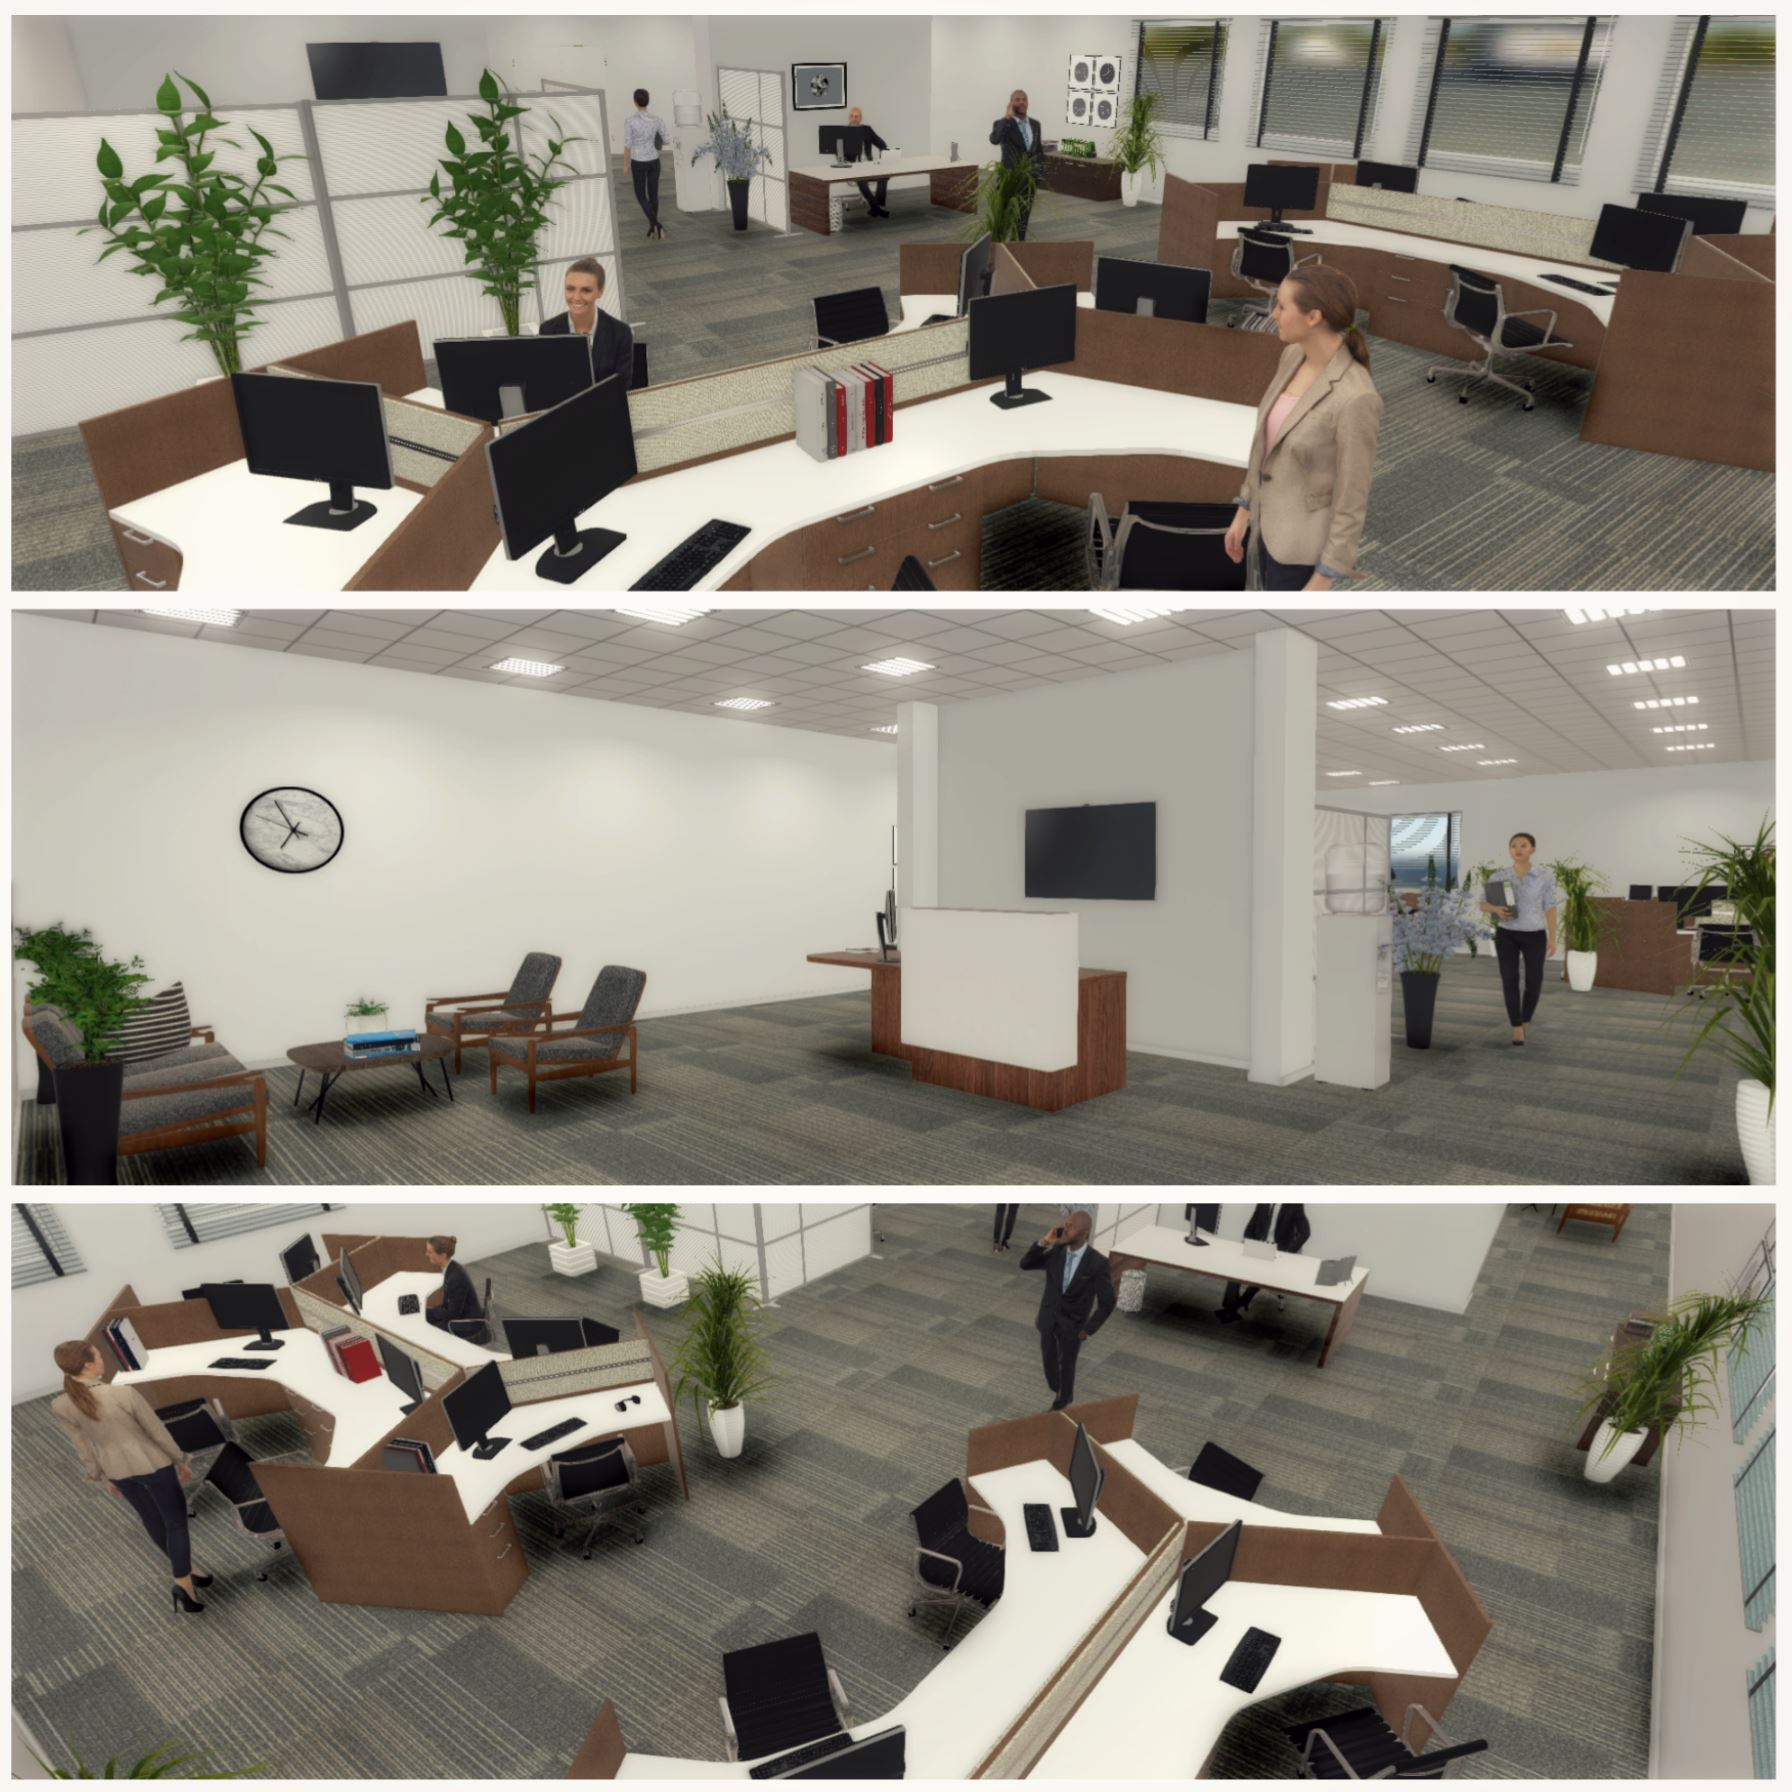 Ecdesign Introduces New 3d Floor Plan Software With Vr Support